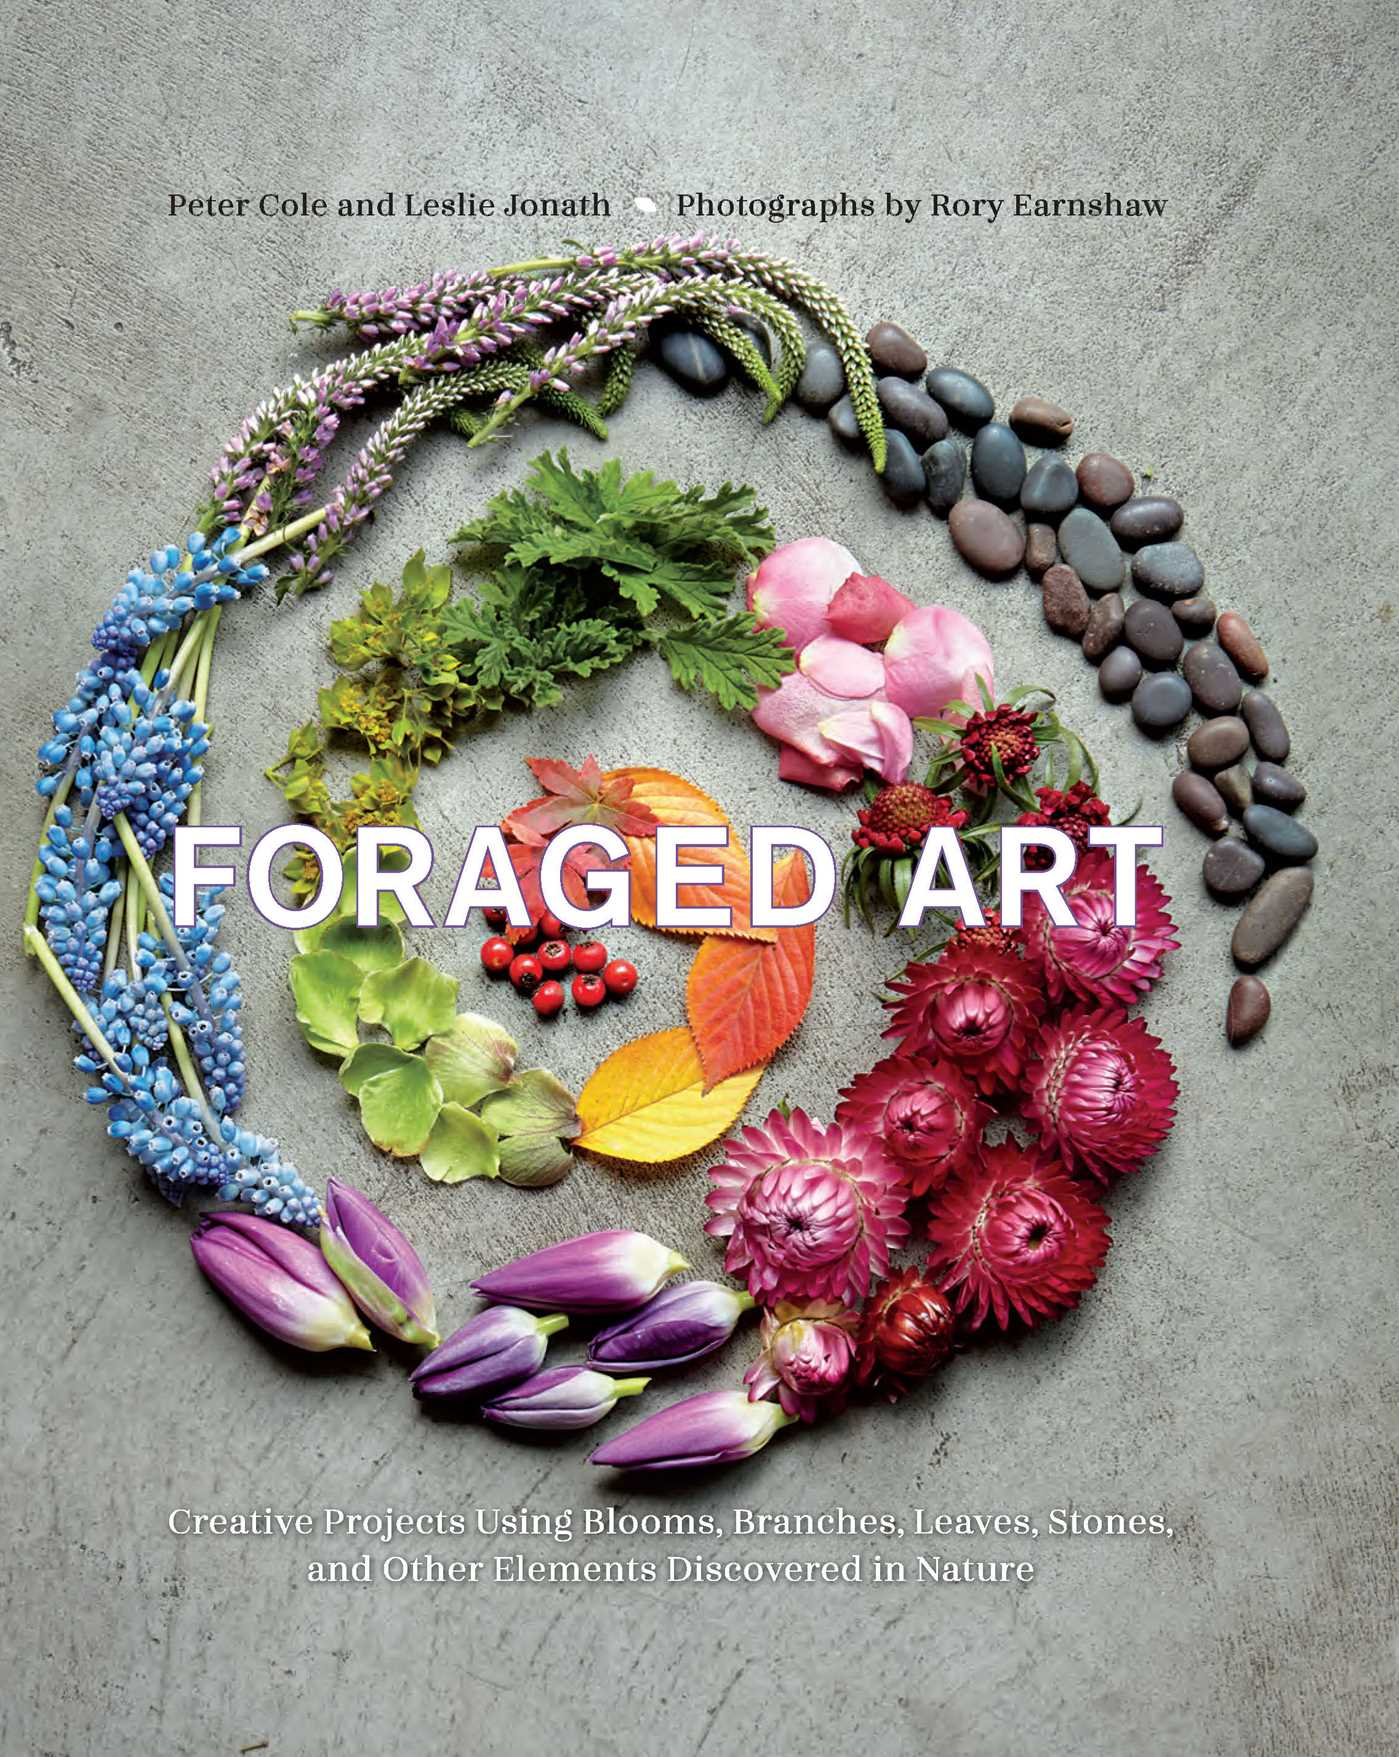 Foraged art 9781681882598 hr